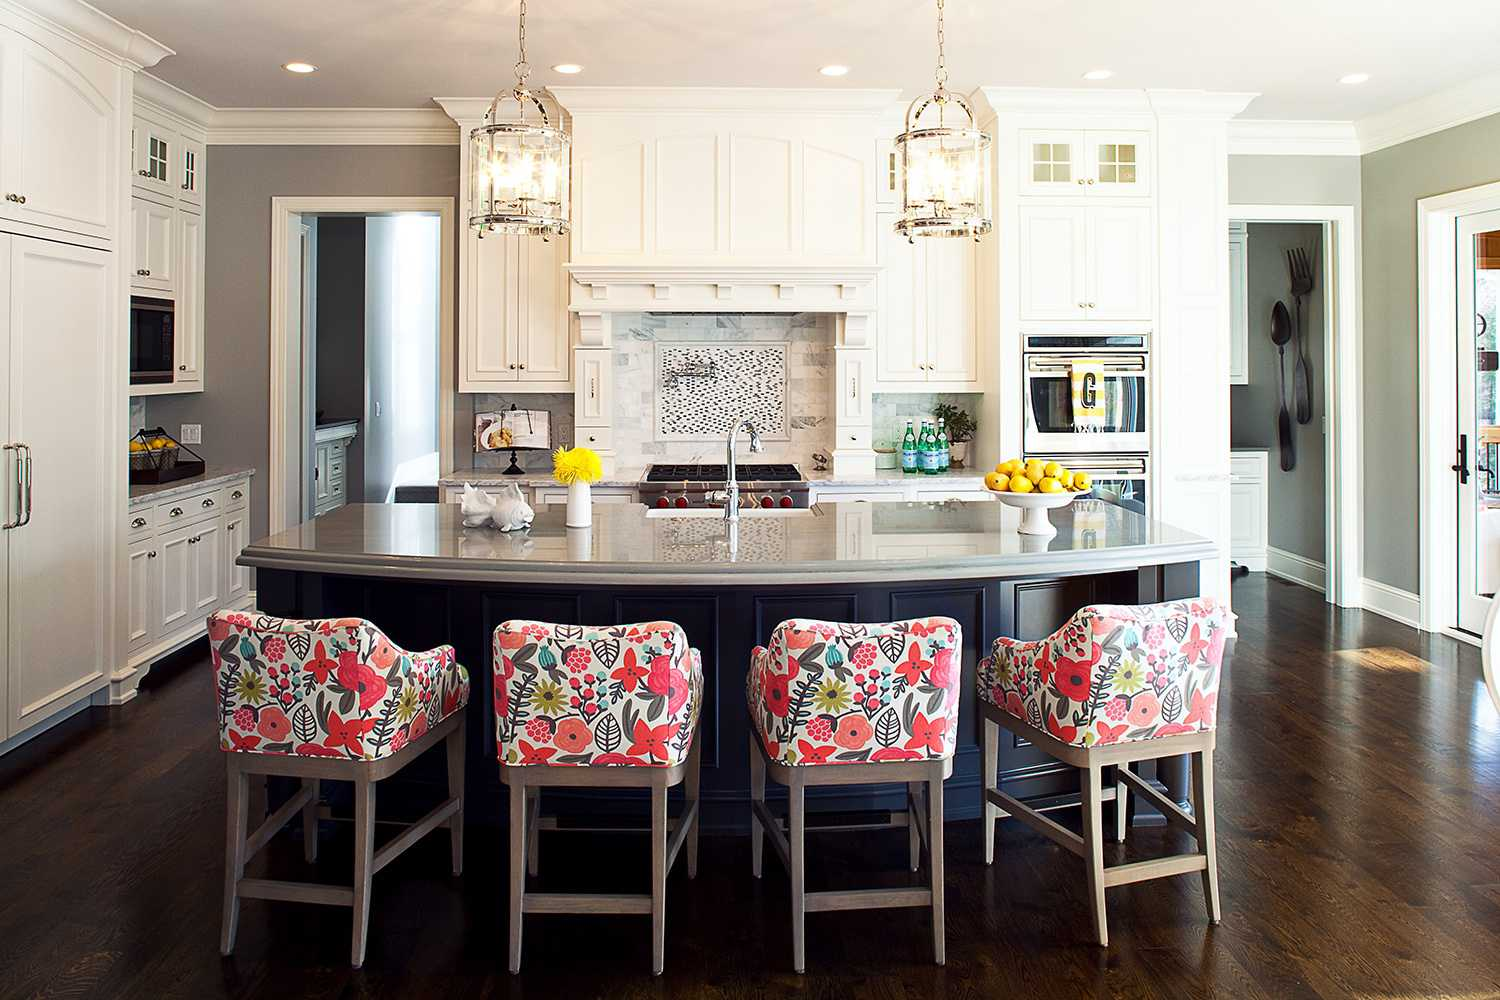 traditional kitchen with fabric stools